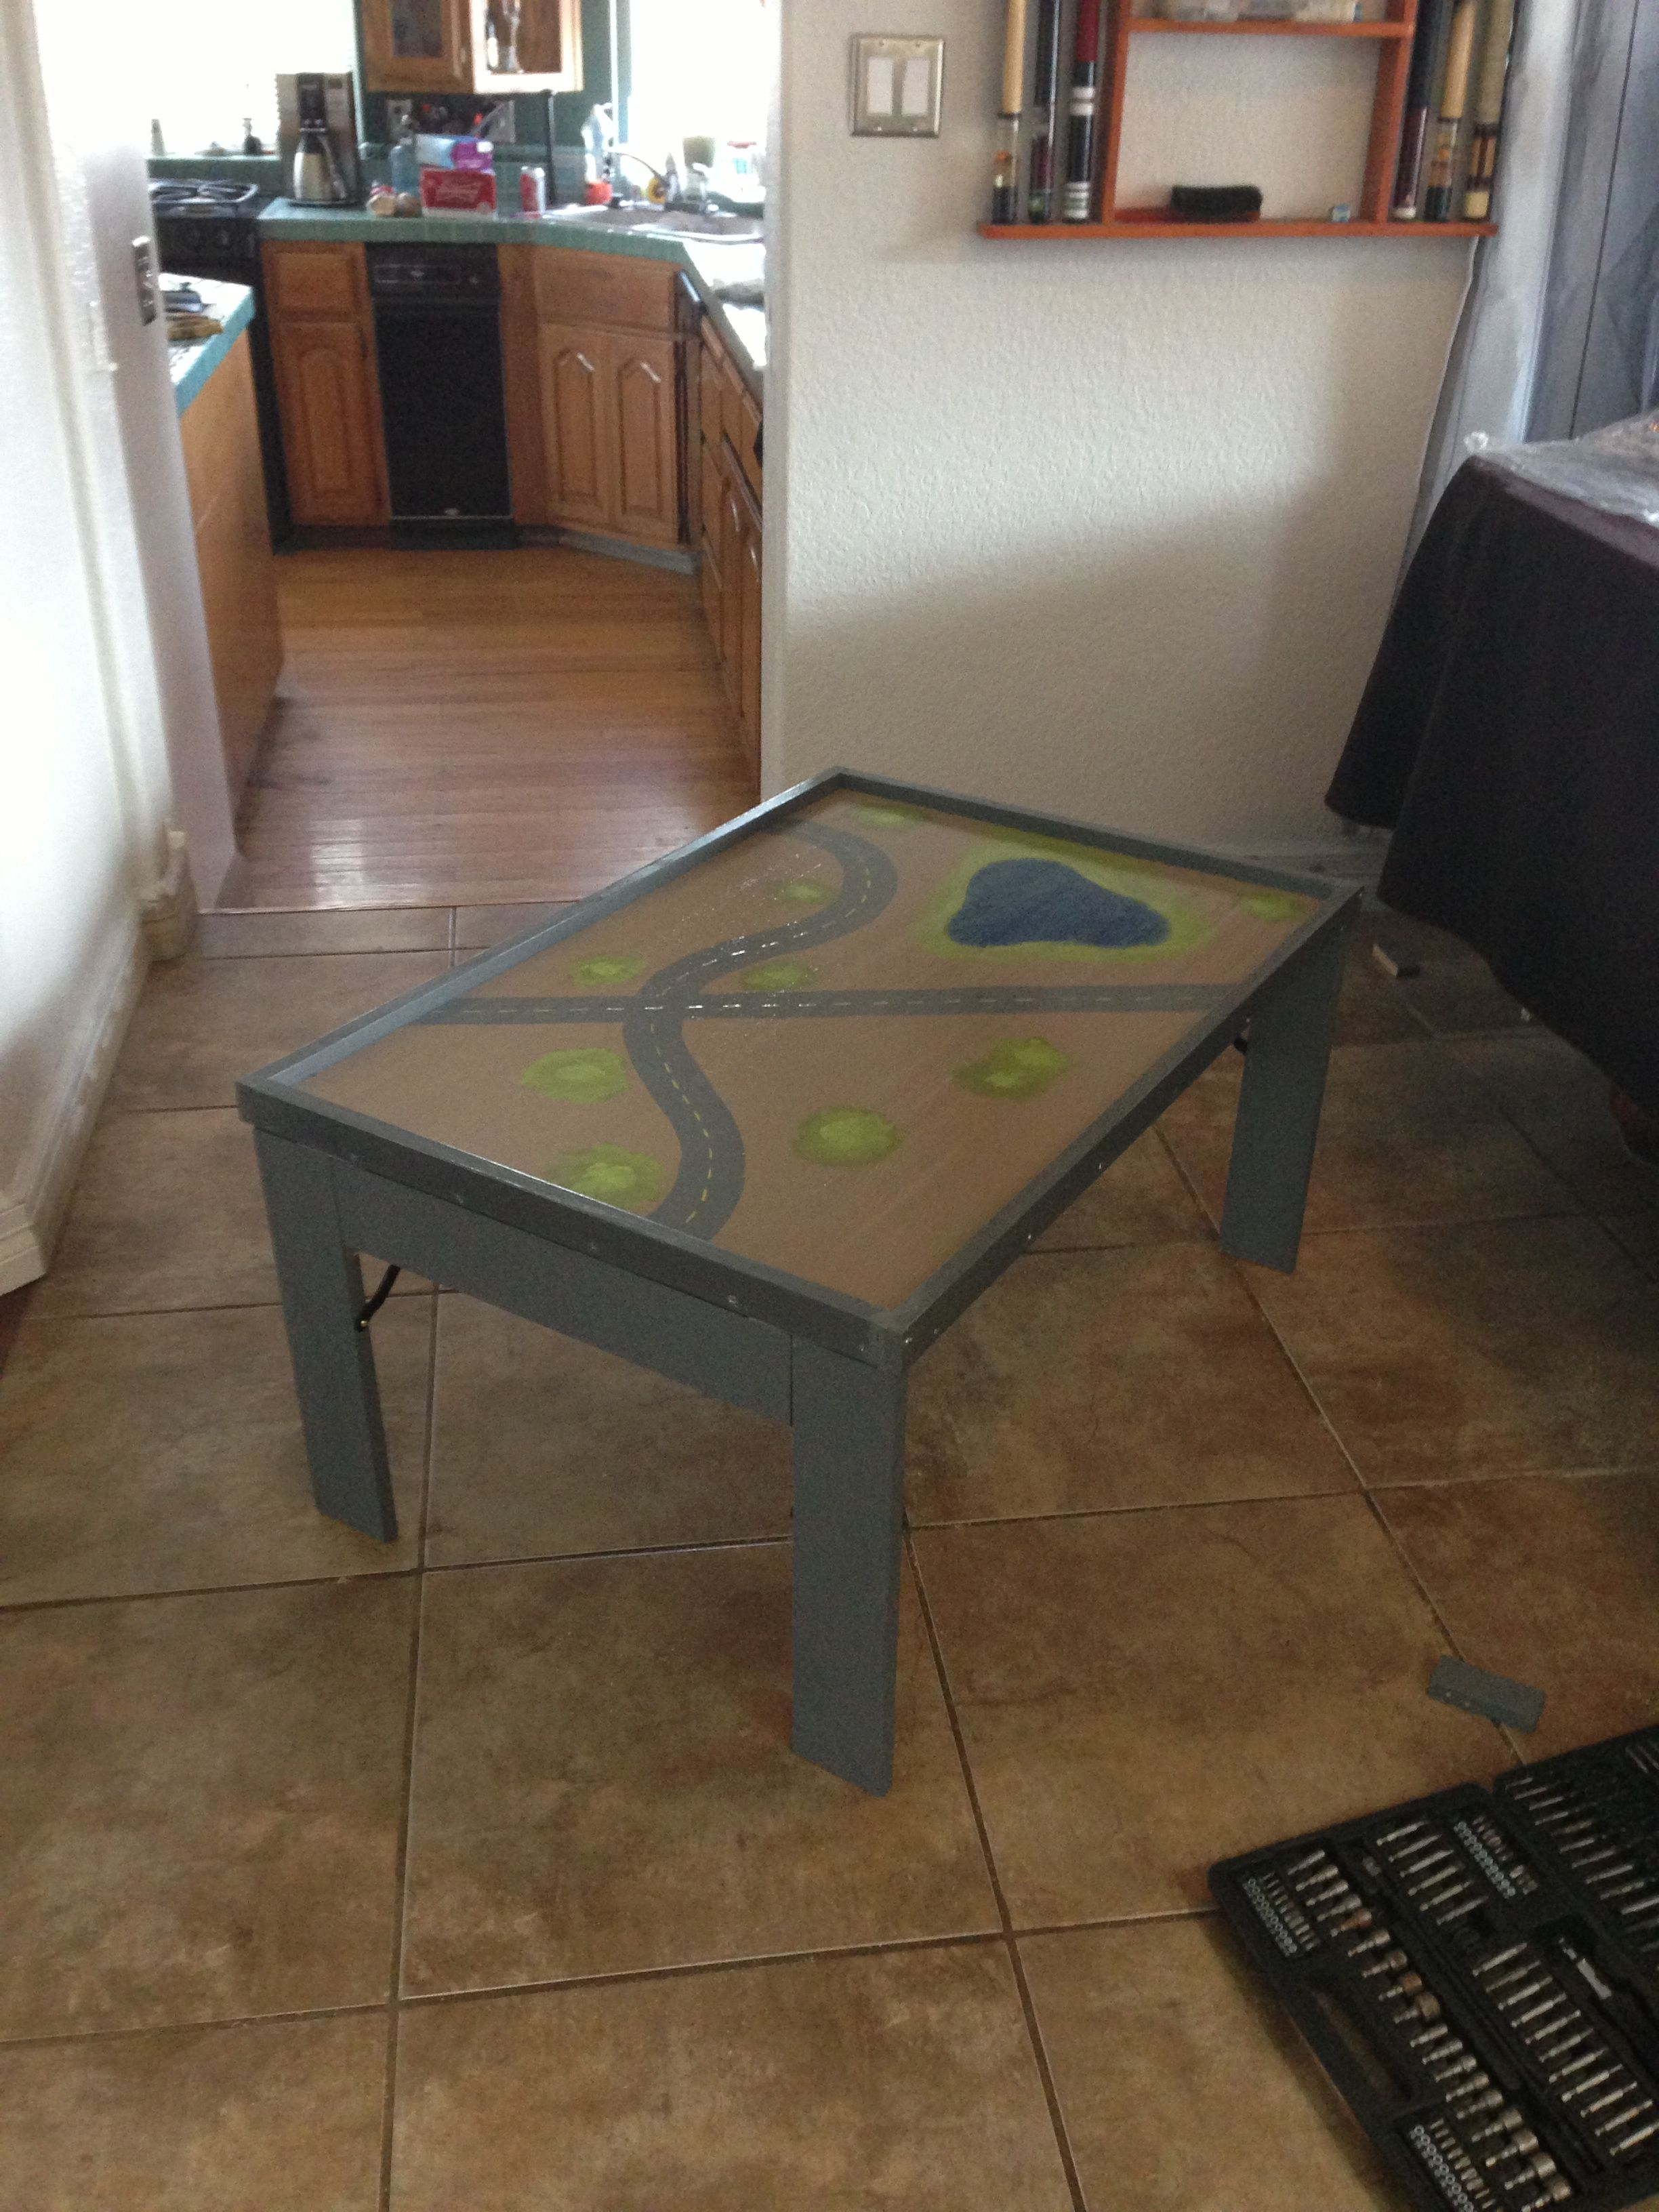 Homemade collapsible train table | My original works | Pinterest ...